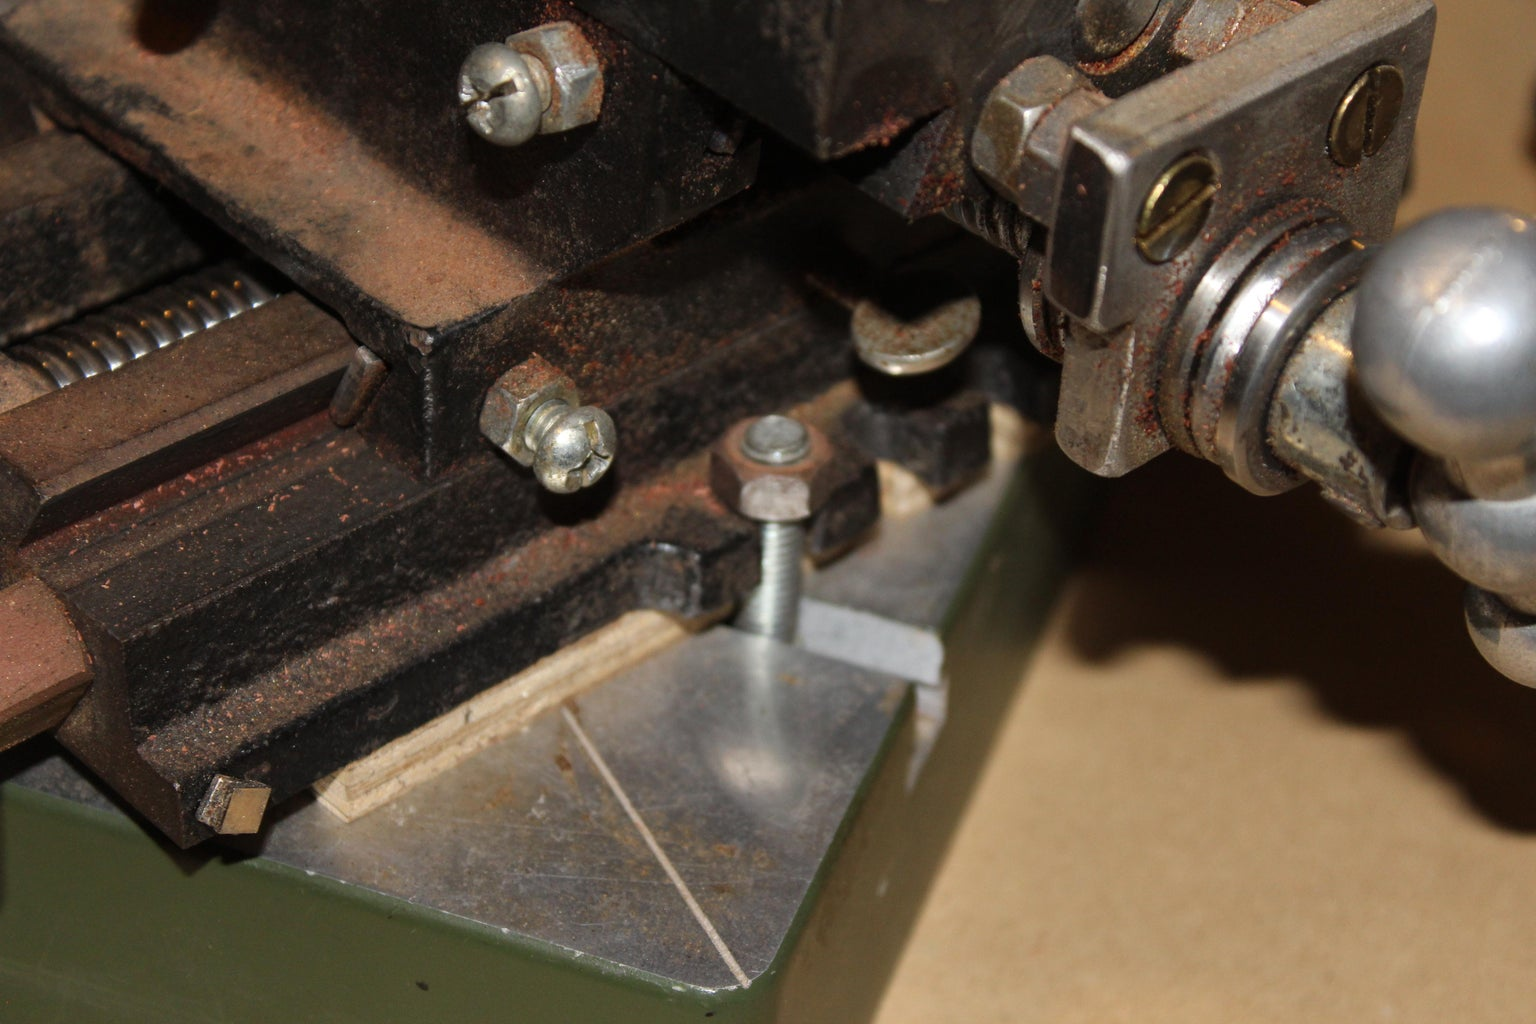 Assemble the Milling Machine